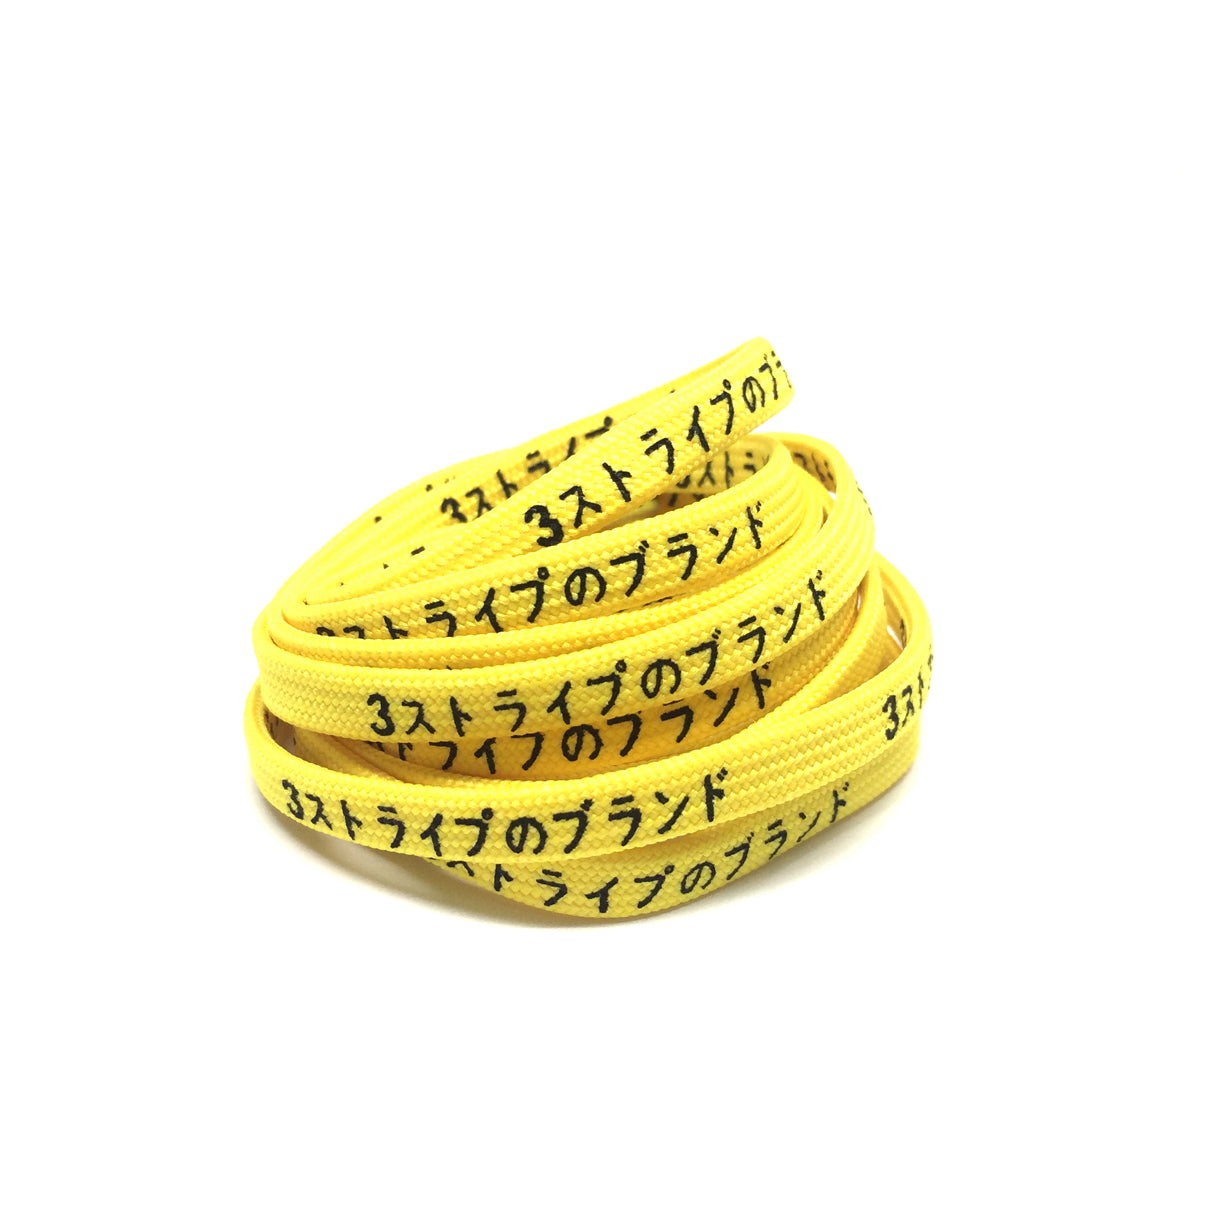 da5b81a711e9a Flat Thin - NMD   Ultra Boost Japanese Katakana Flat Laces - Yellow With  Black Font